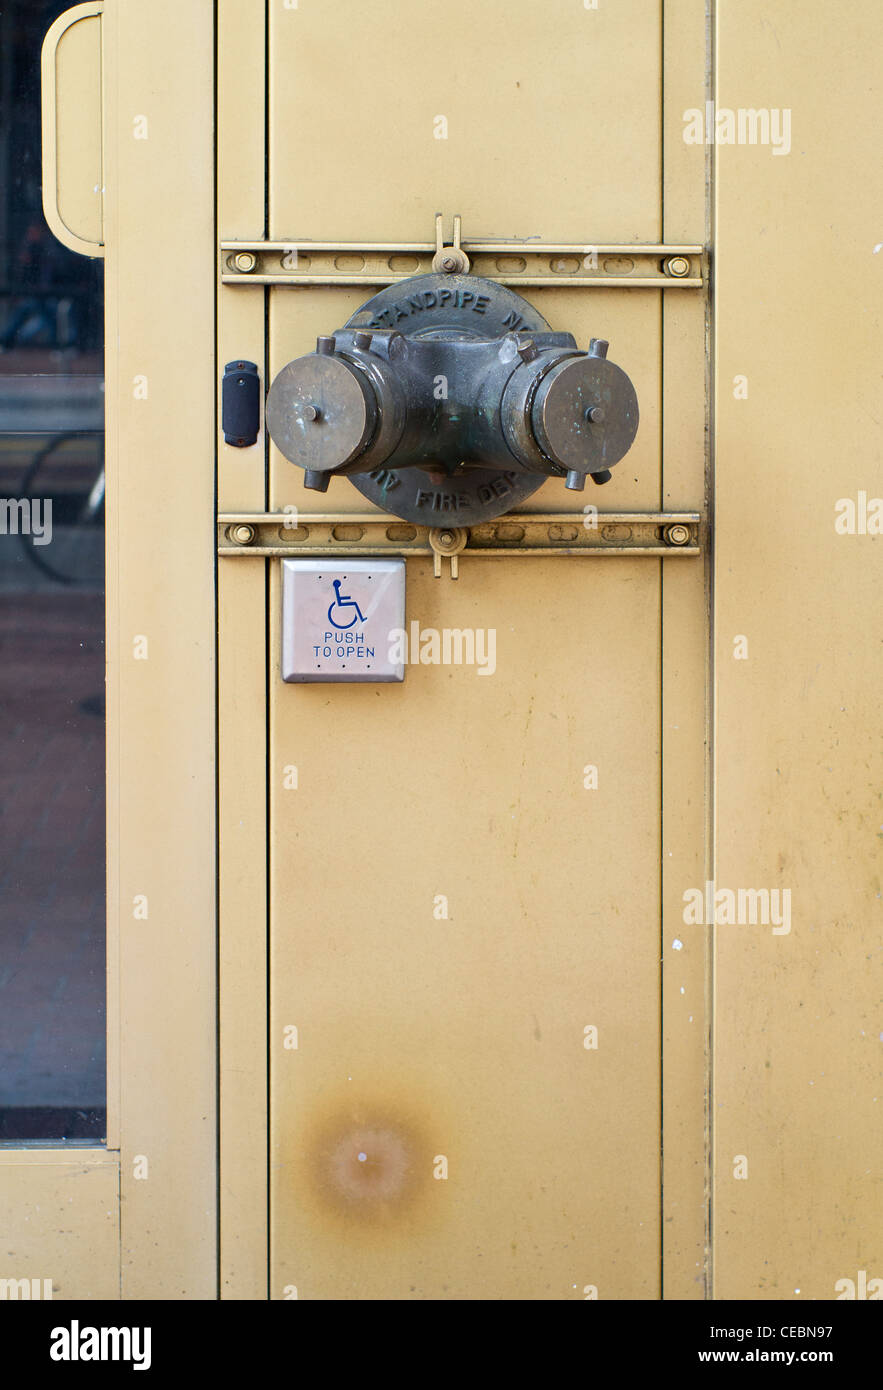 Curious juxtaposition of dry standpipe connection points and a disabled access push switch to open a door in San - Stock Image